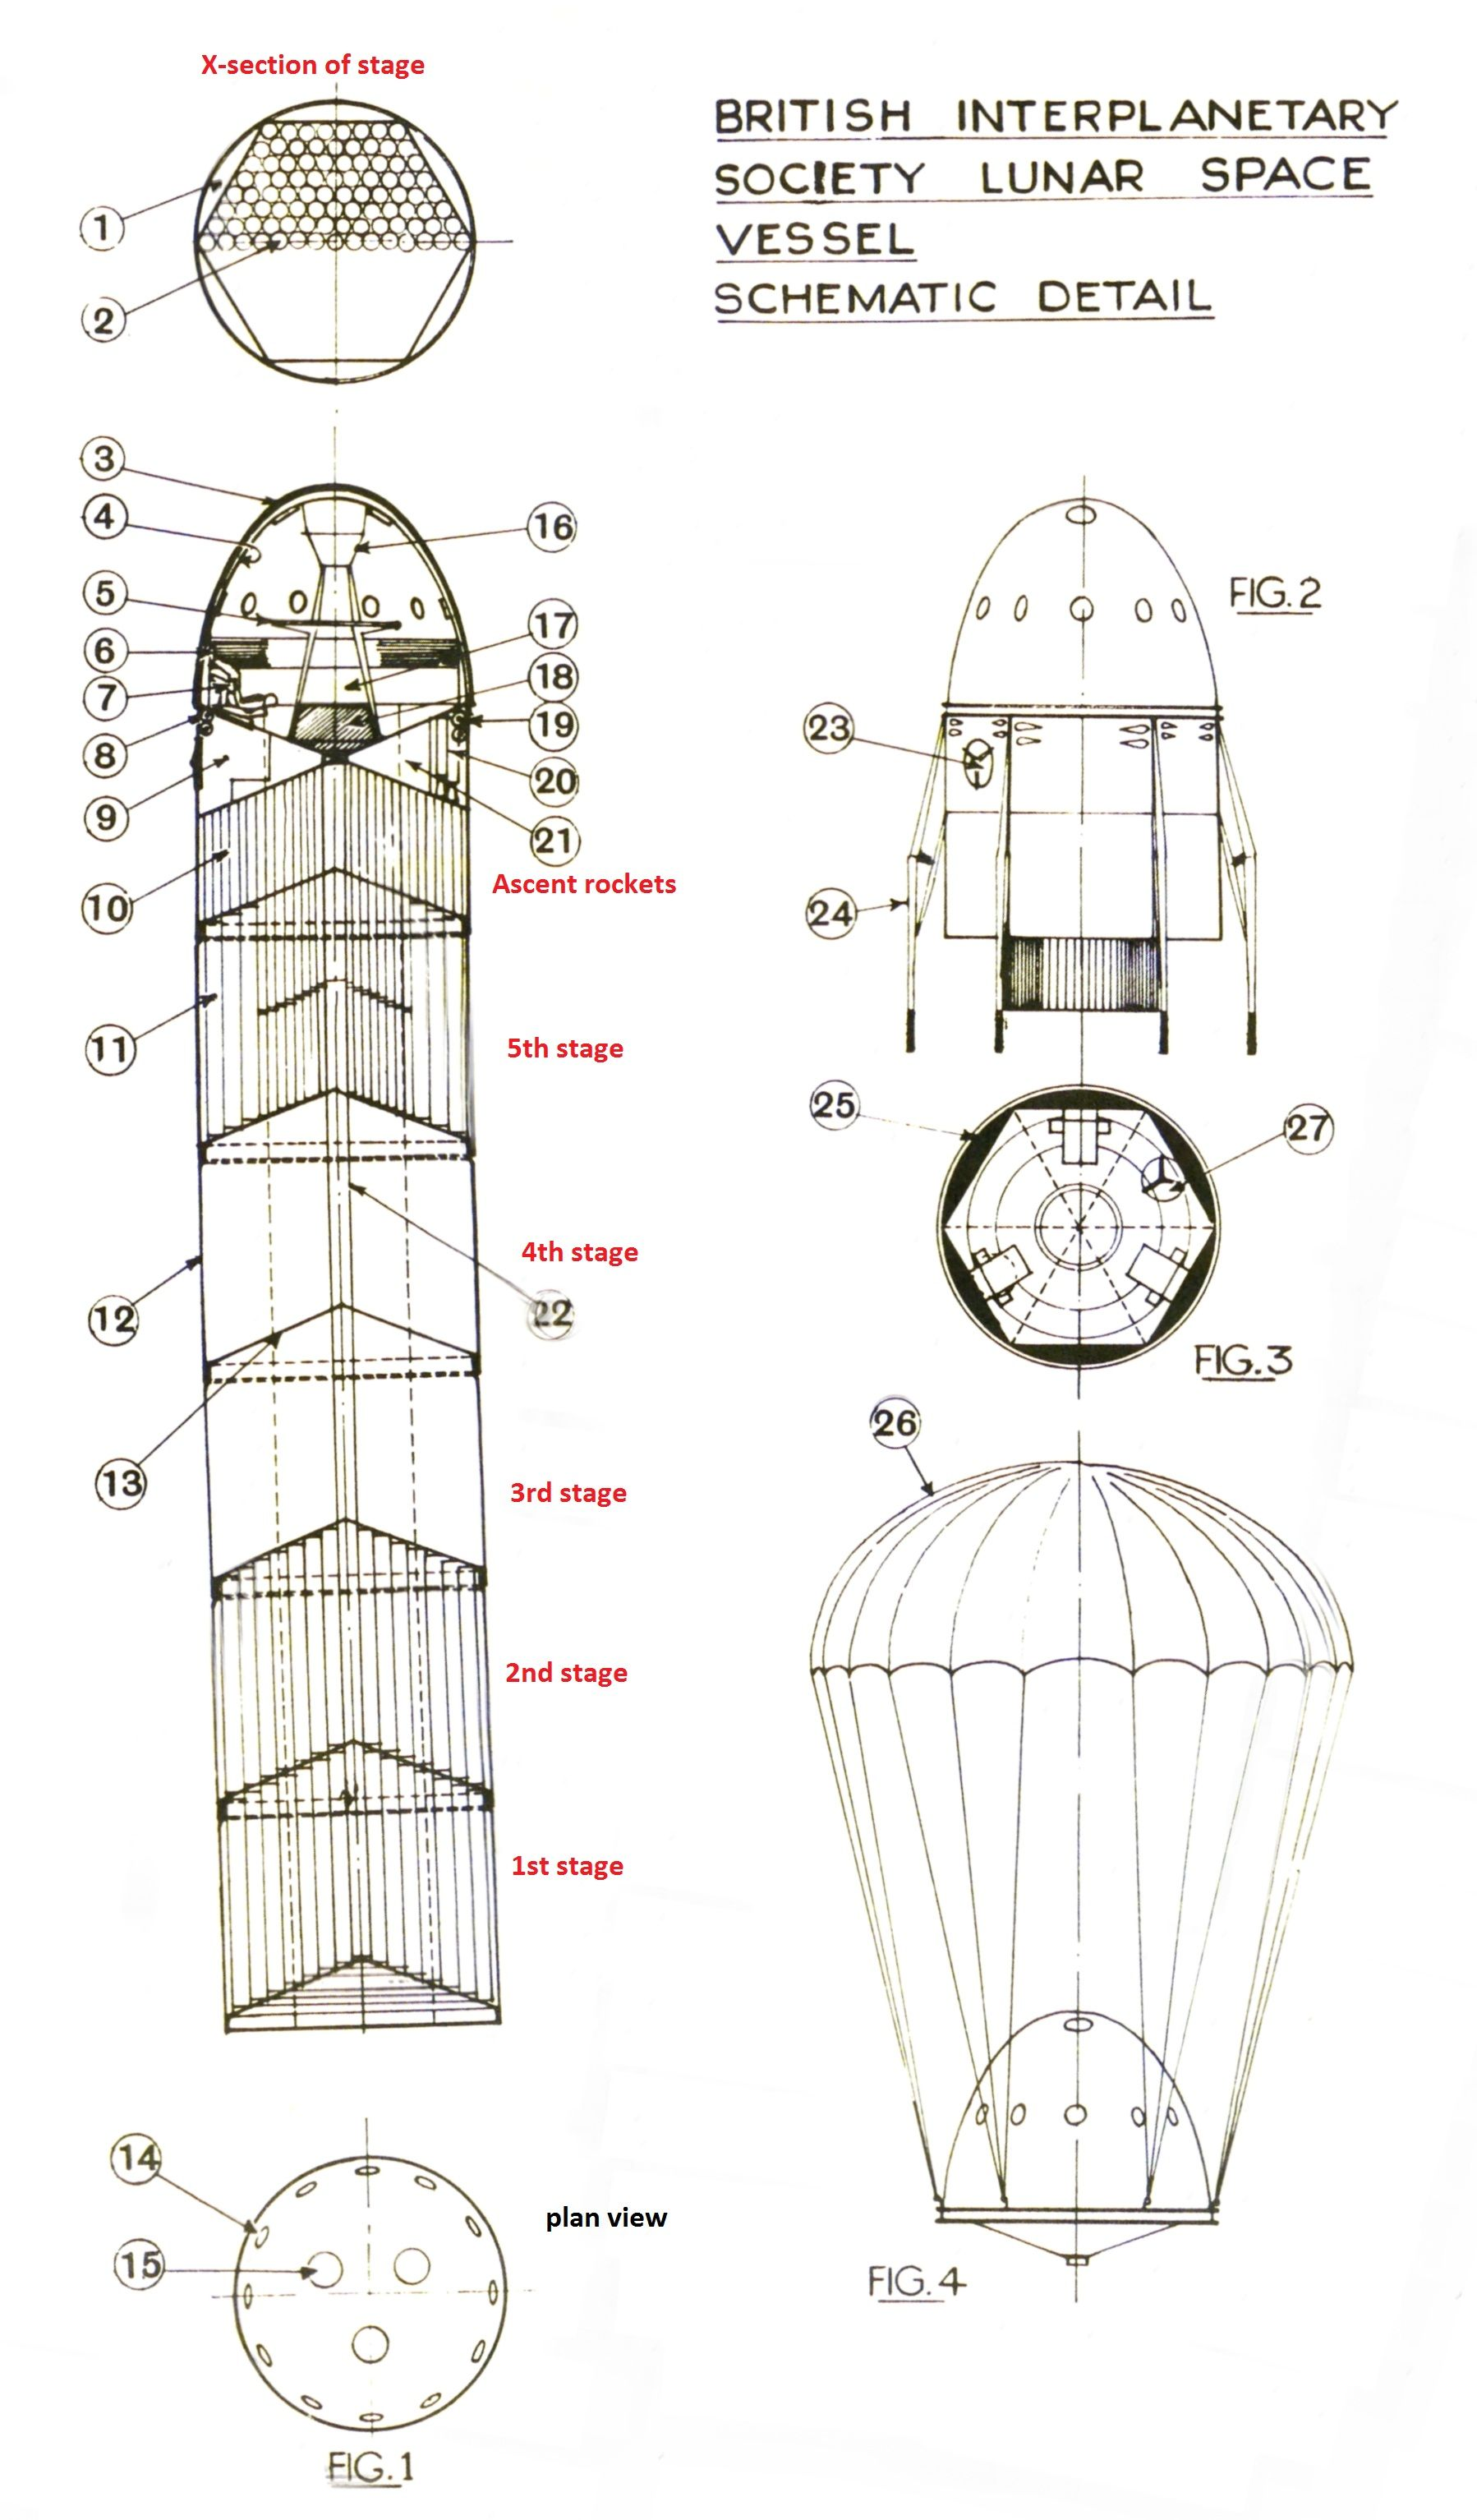 medium resolution of 1939 schematic of a 5 stage rocket spaceship to land on and return from the moon by the british interplanetary society artist r a smith